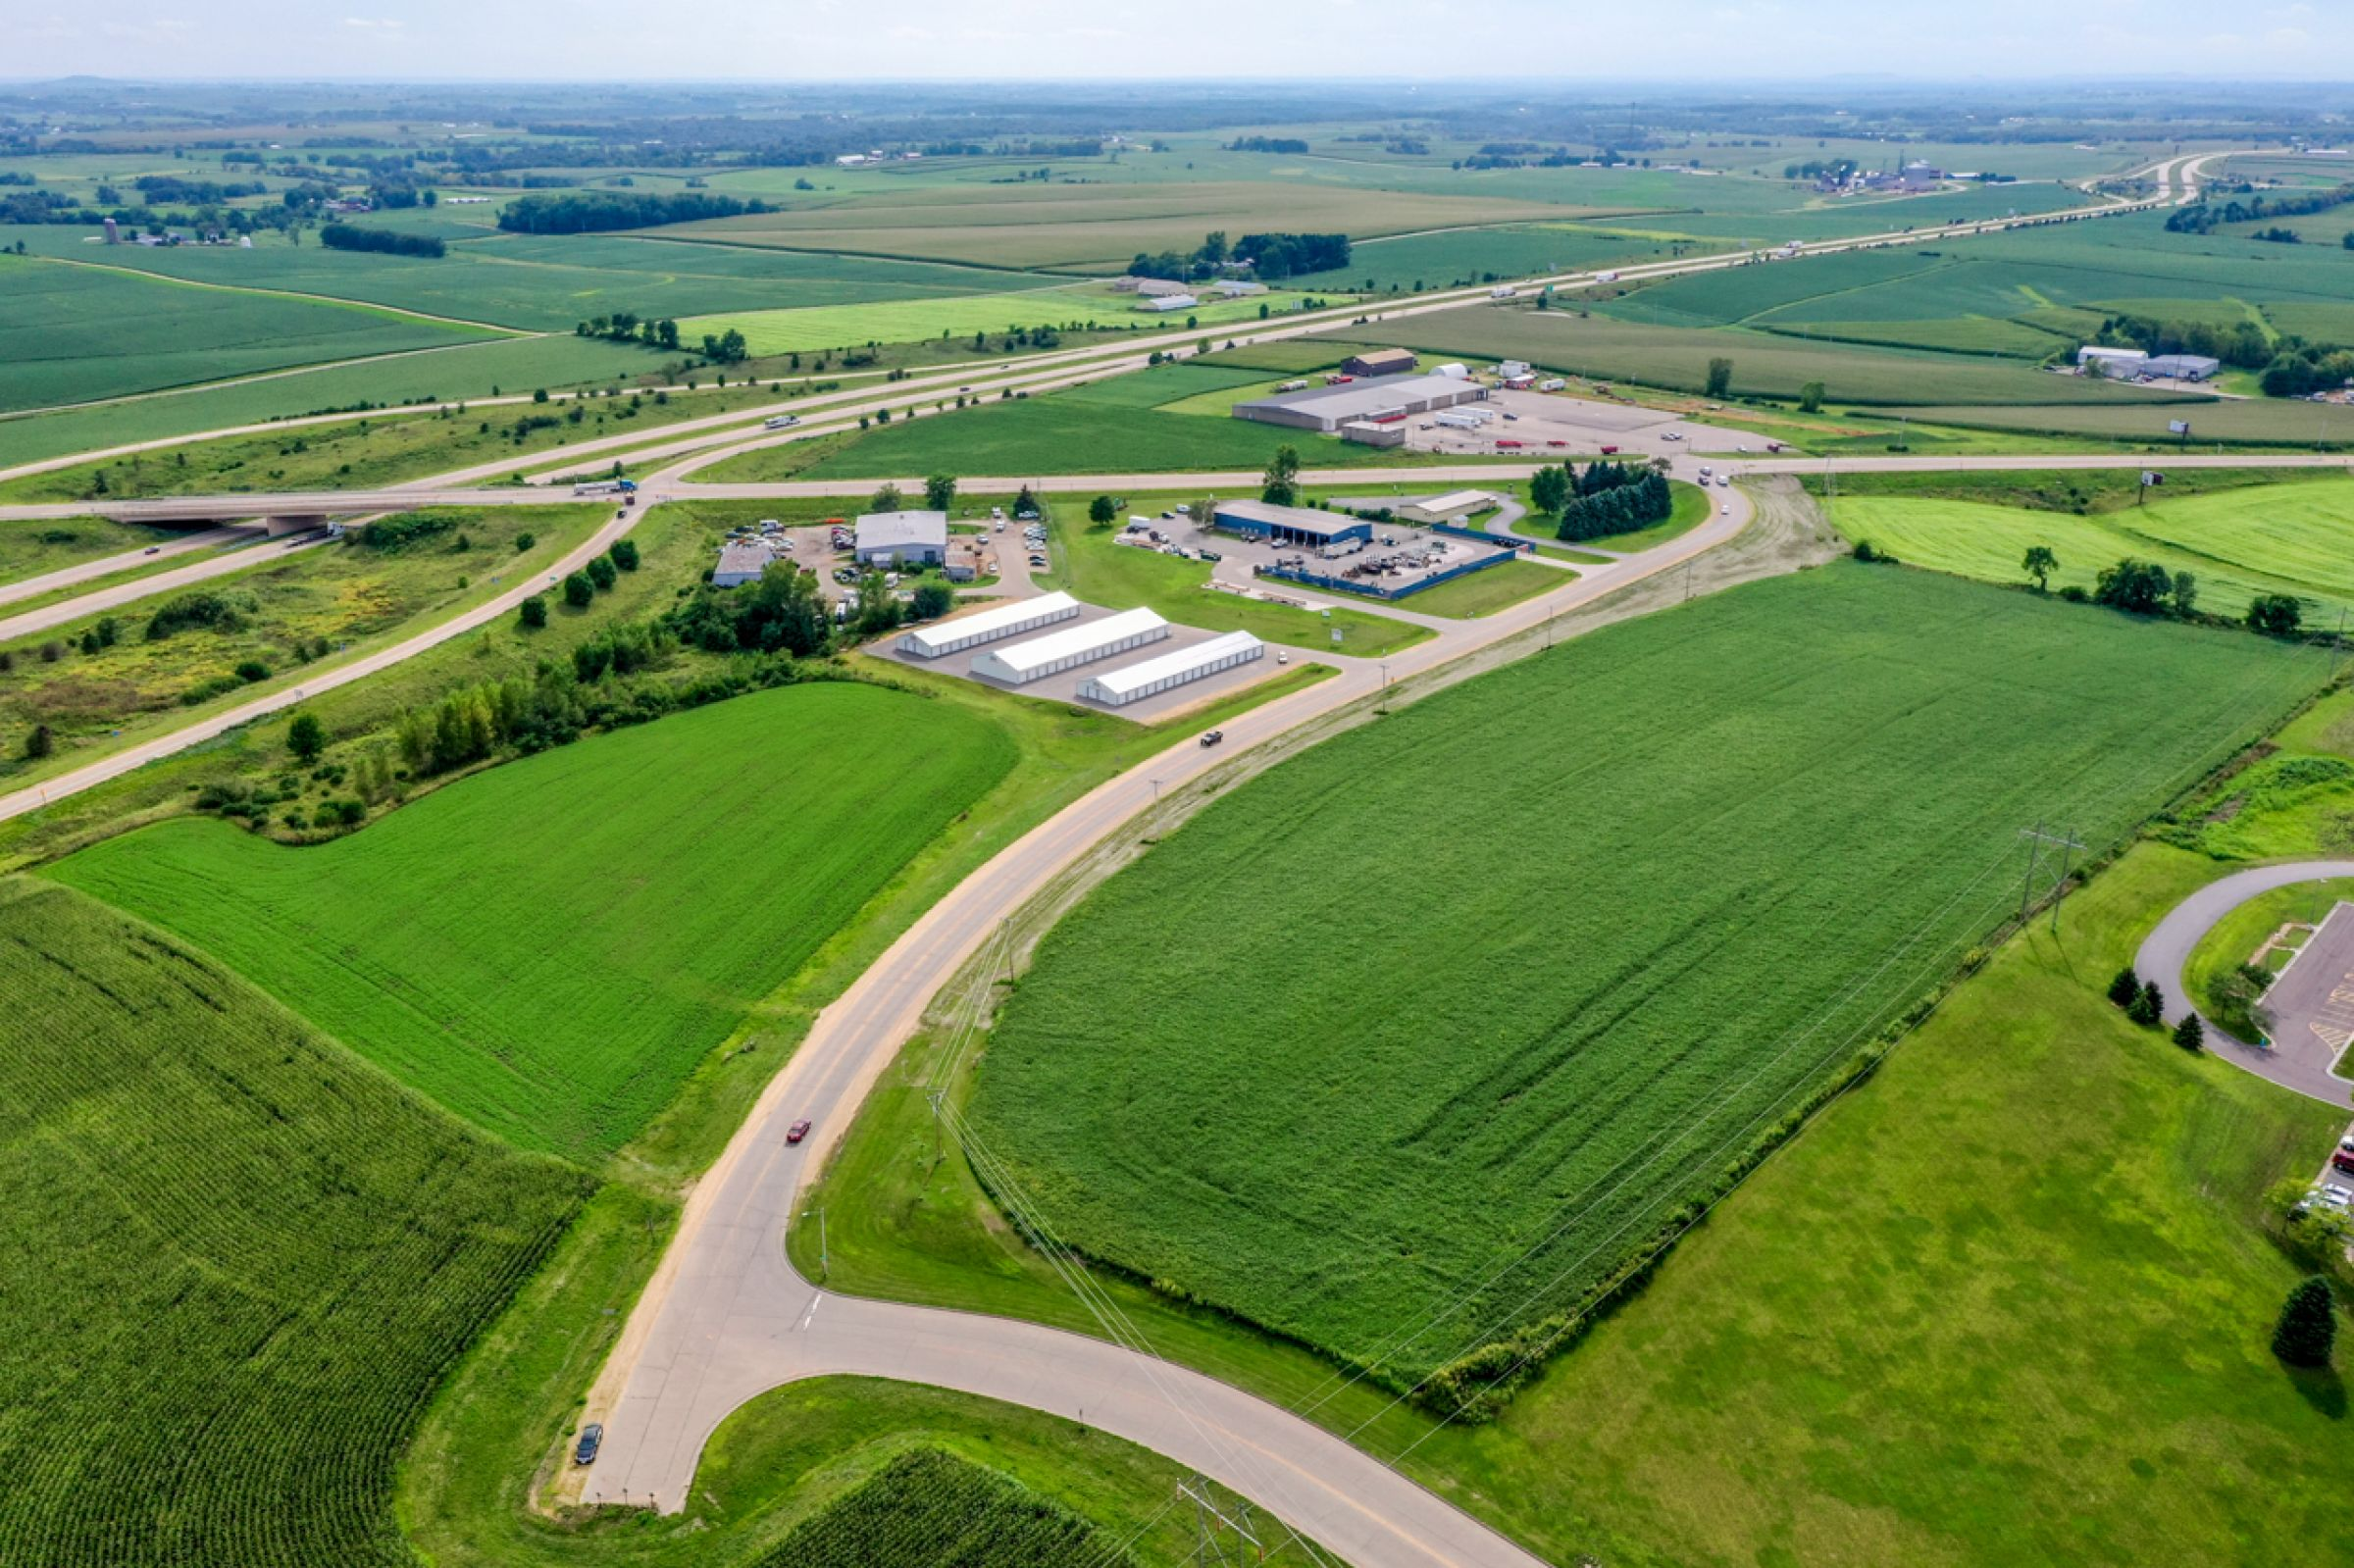 development-land-grant-county-wisconsin-12-acres-listing-number-15746-1-2021-09-13-014235.jpg